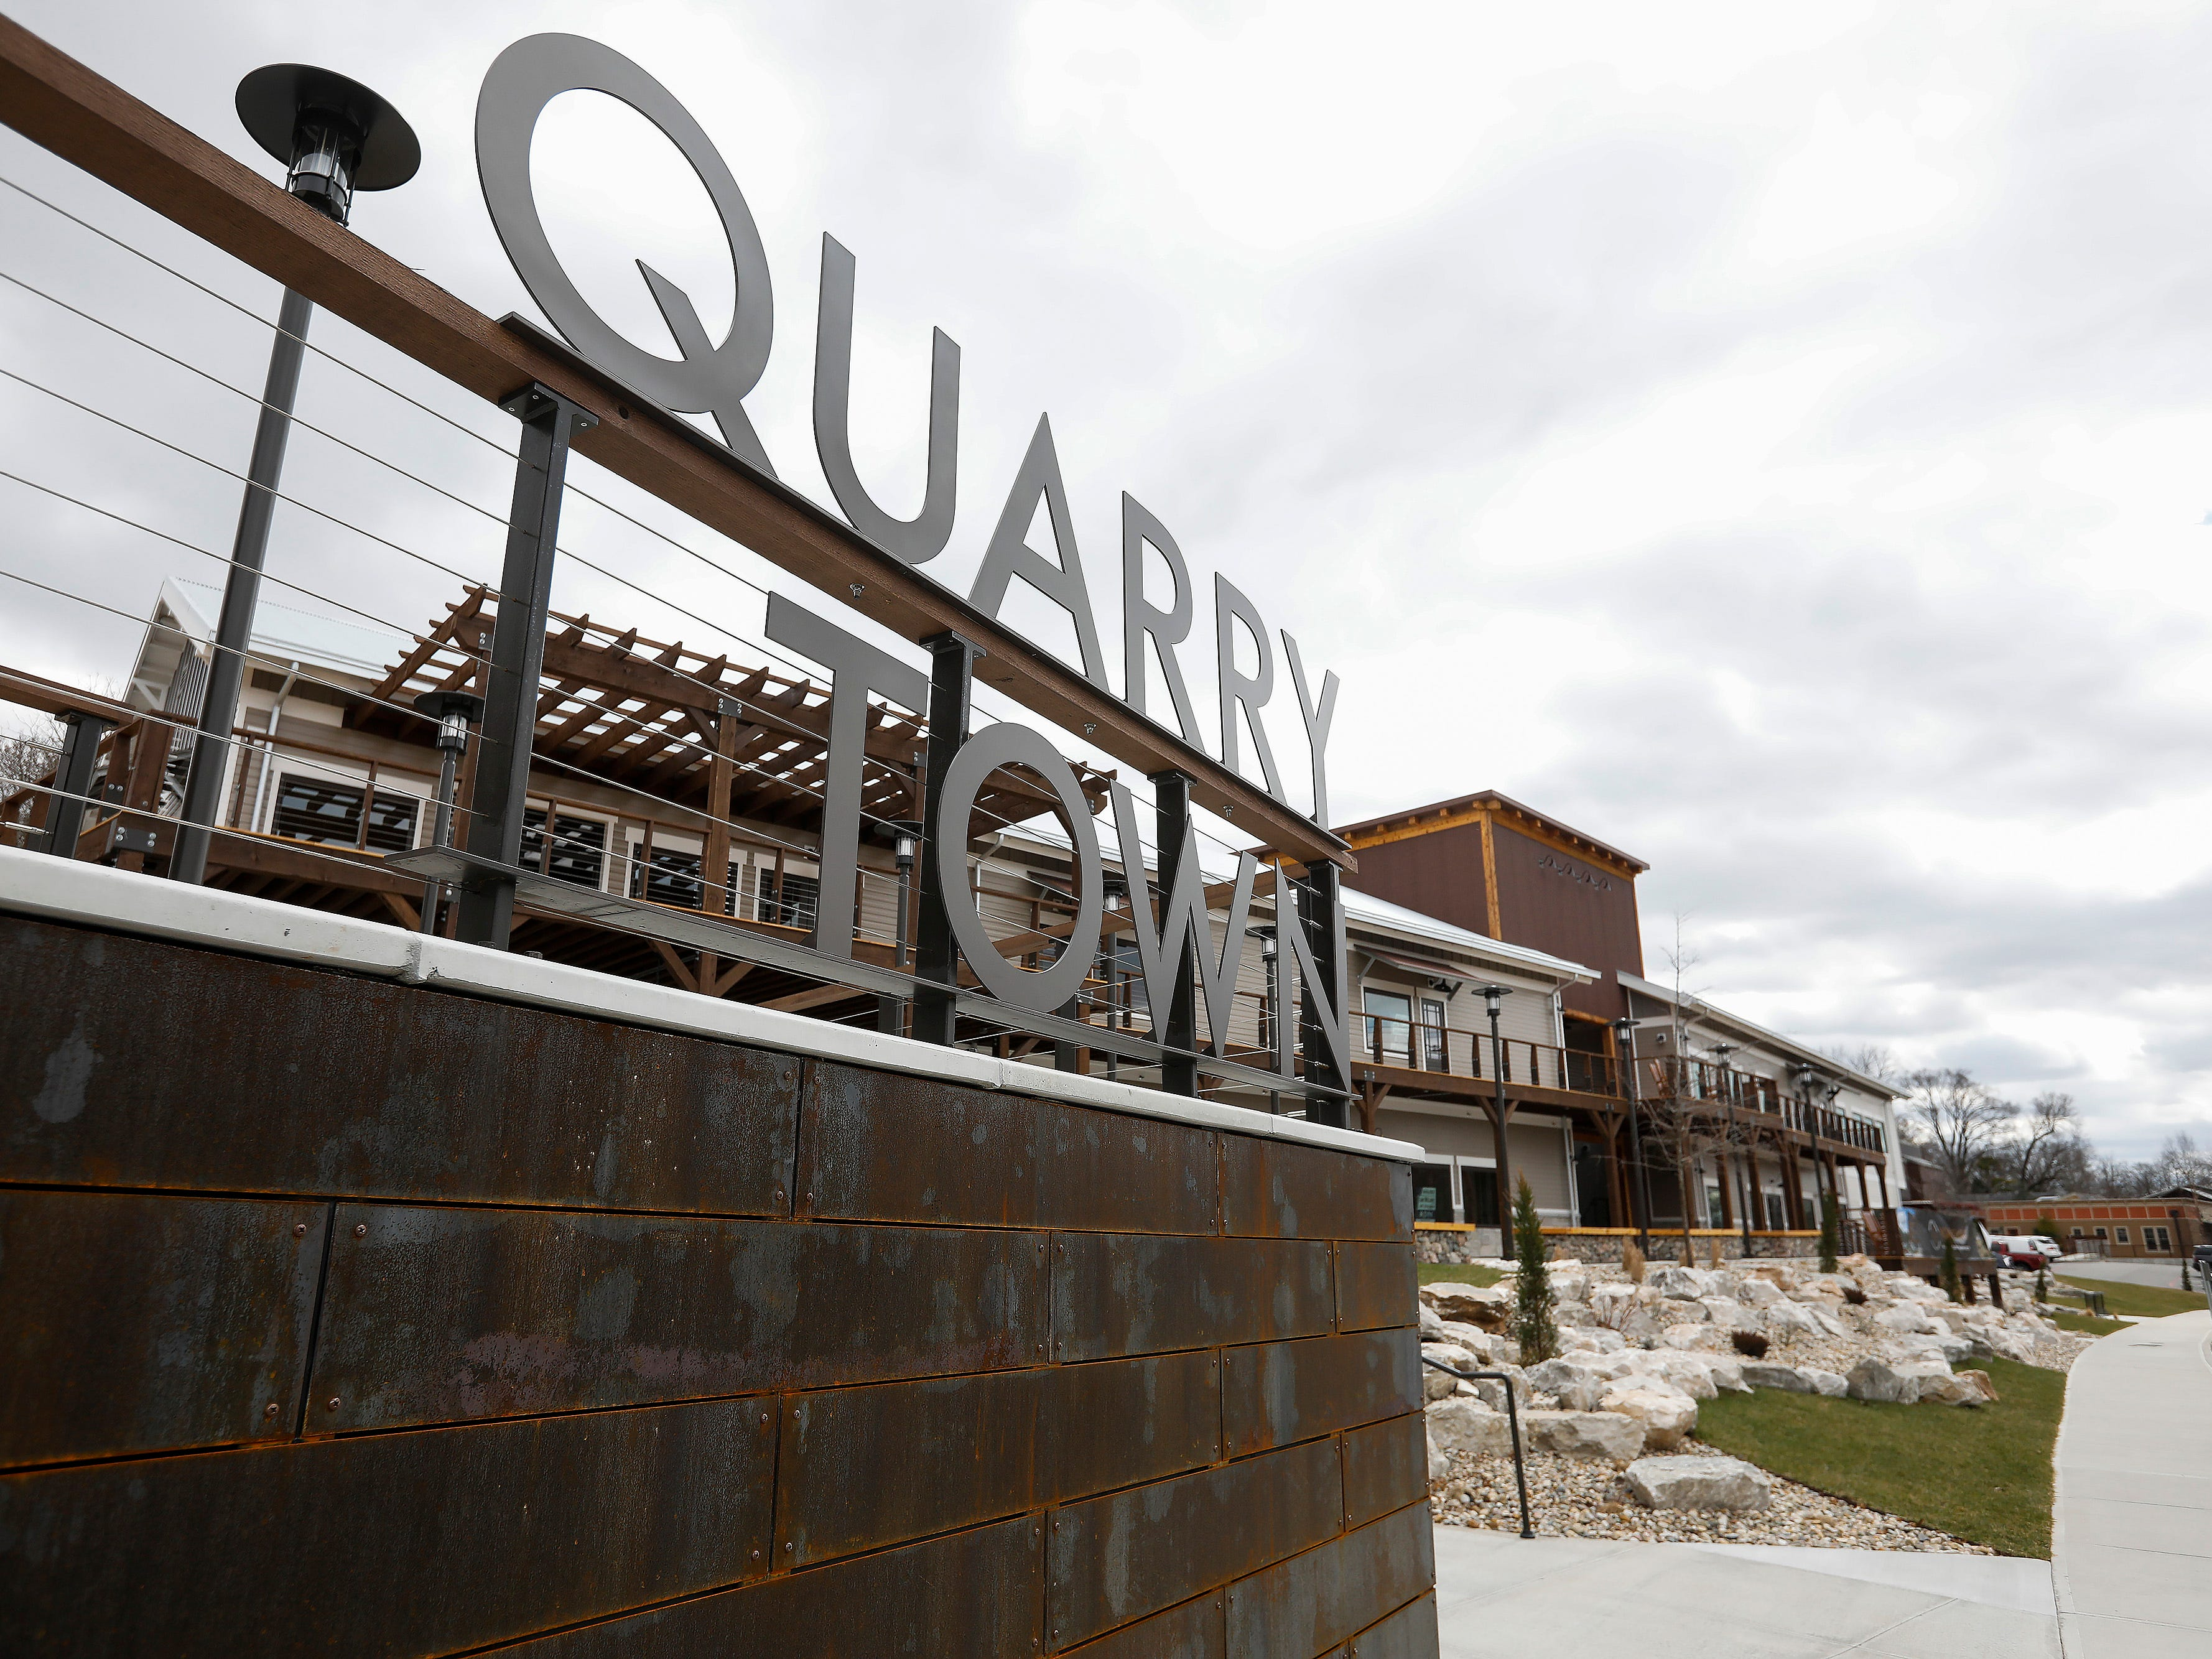 Space is available to lease at the new Quarry Town development in the Galloway neighborhood.